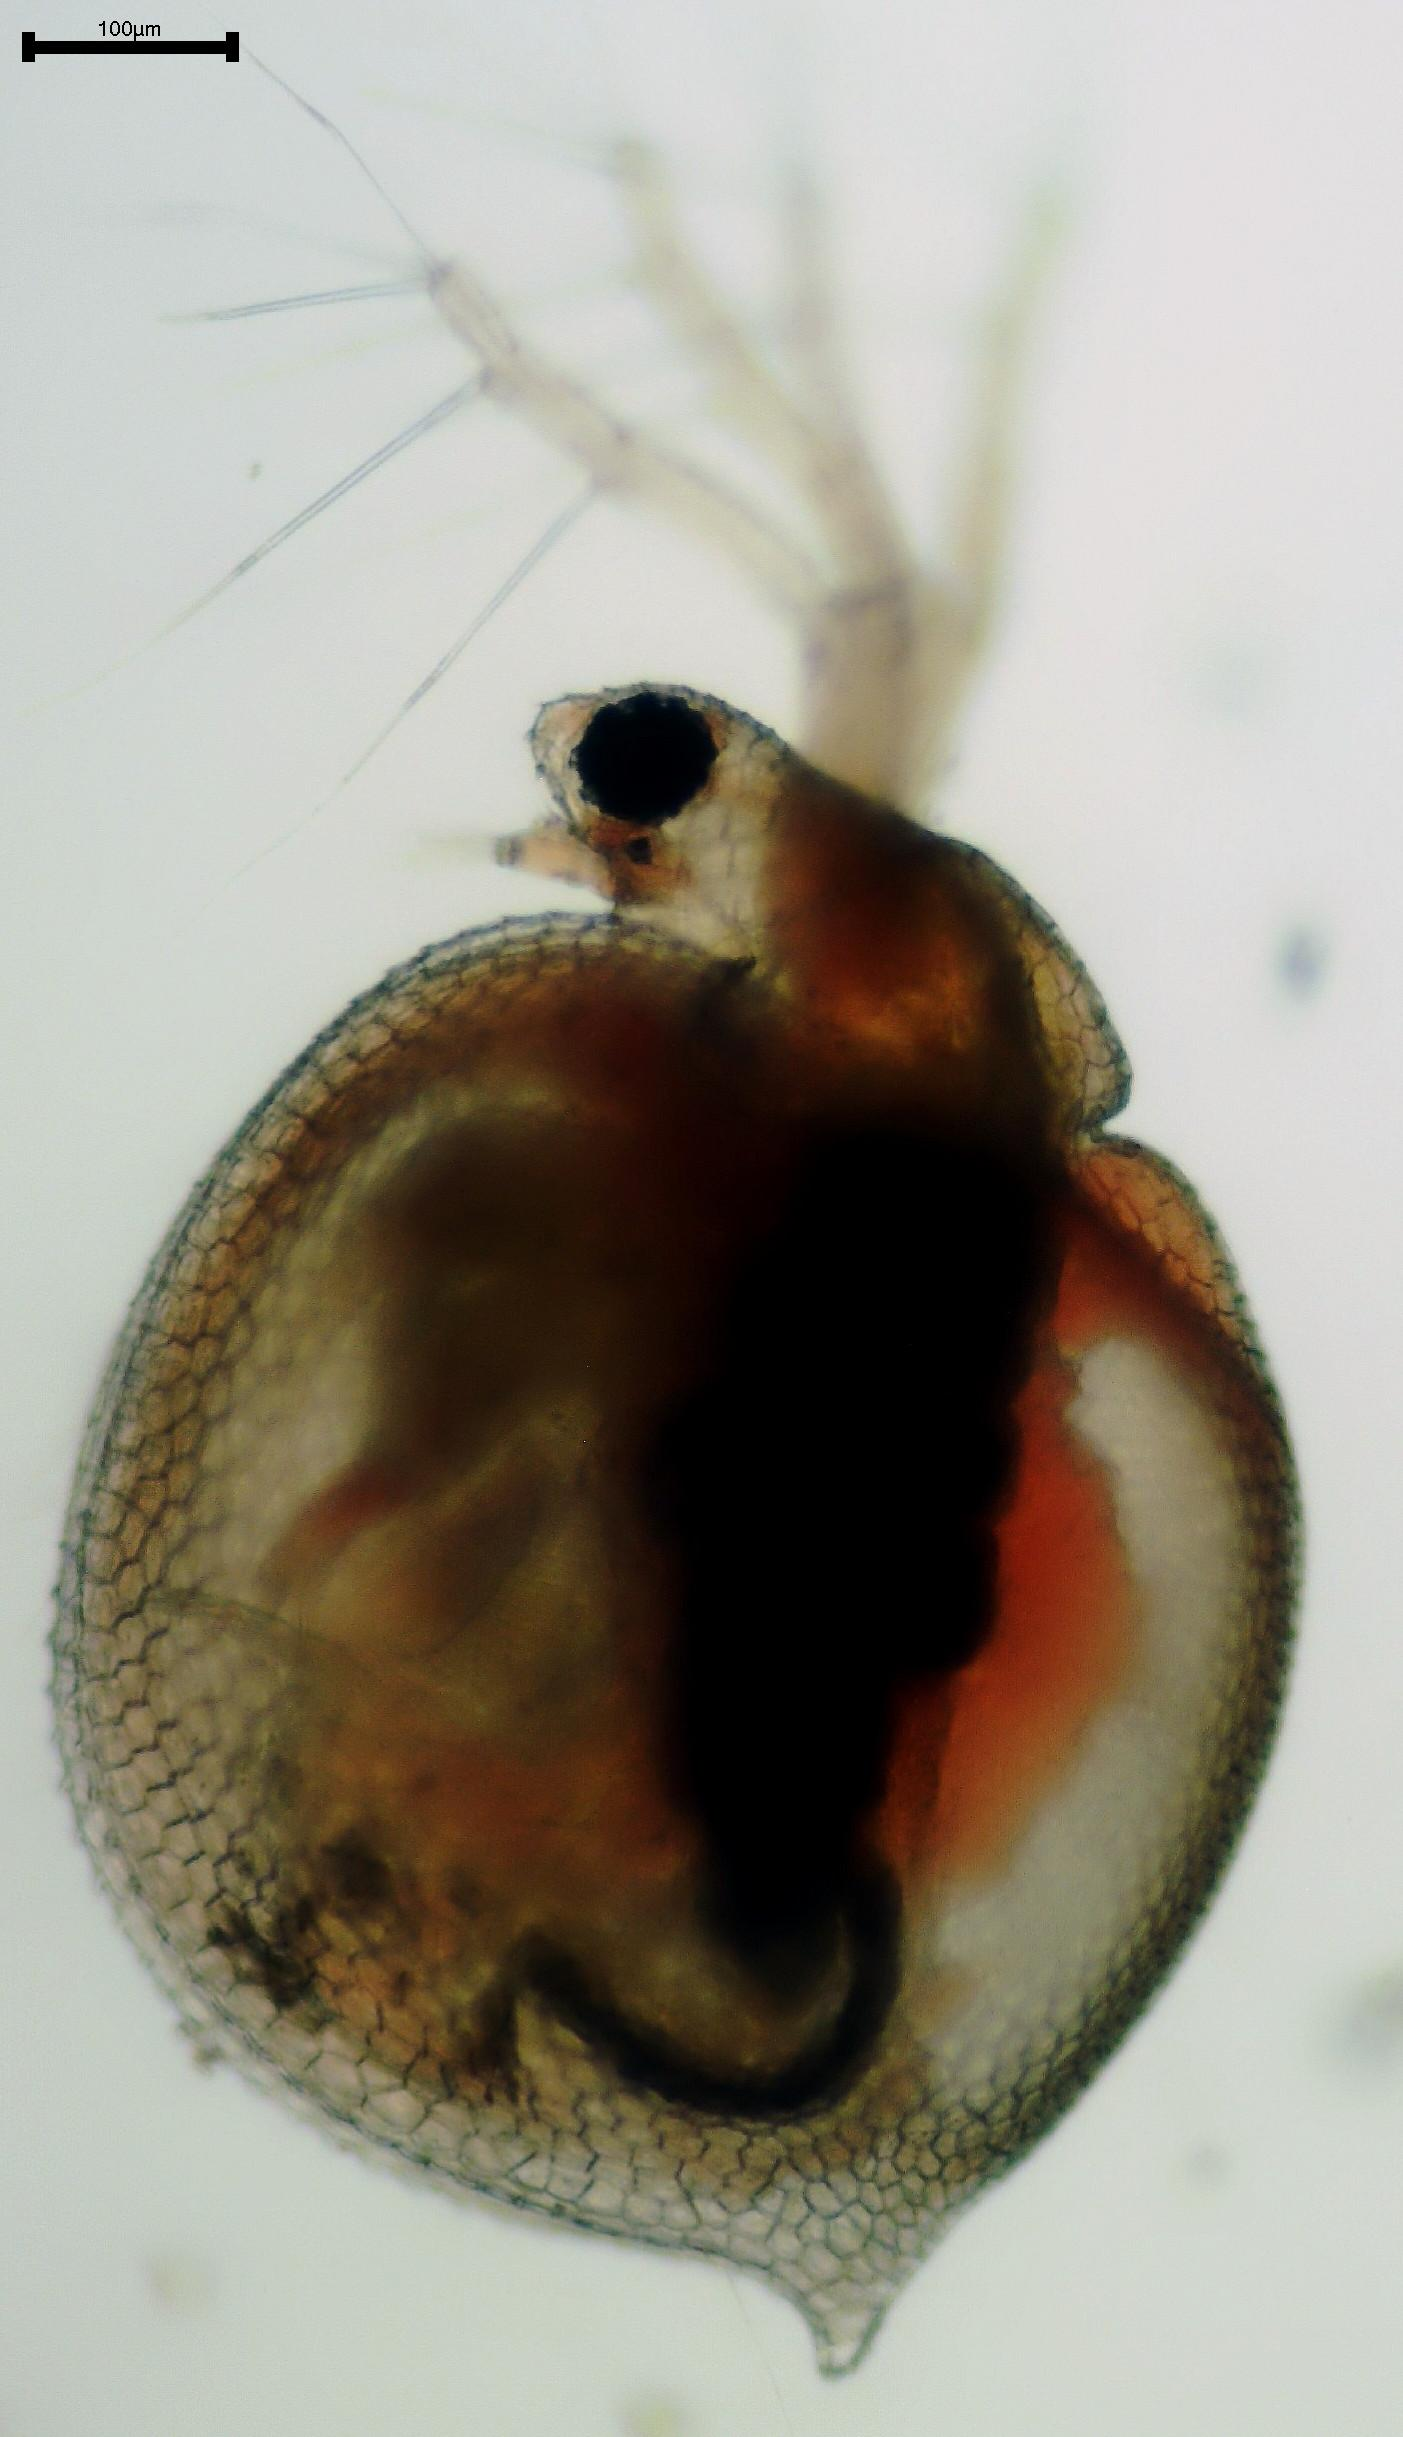 a study on ceriodaphnia Case study: compendia strategy for a new oncology product how xcenda developed a compendia strategy for a client new to the oncology market.